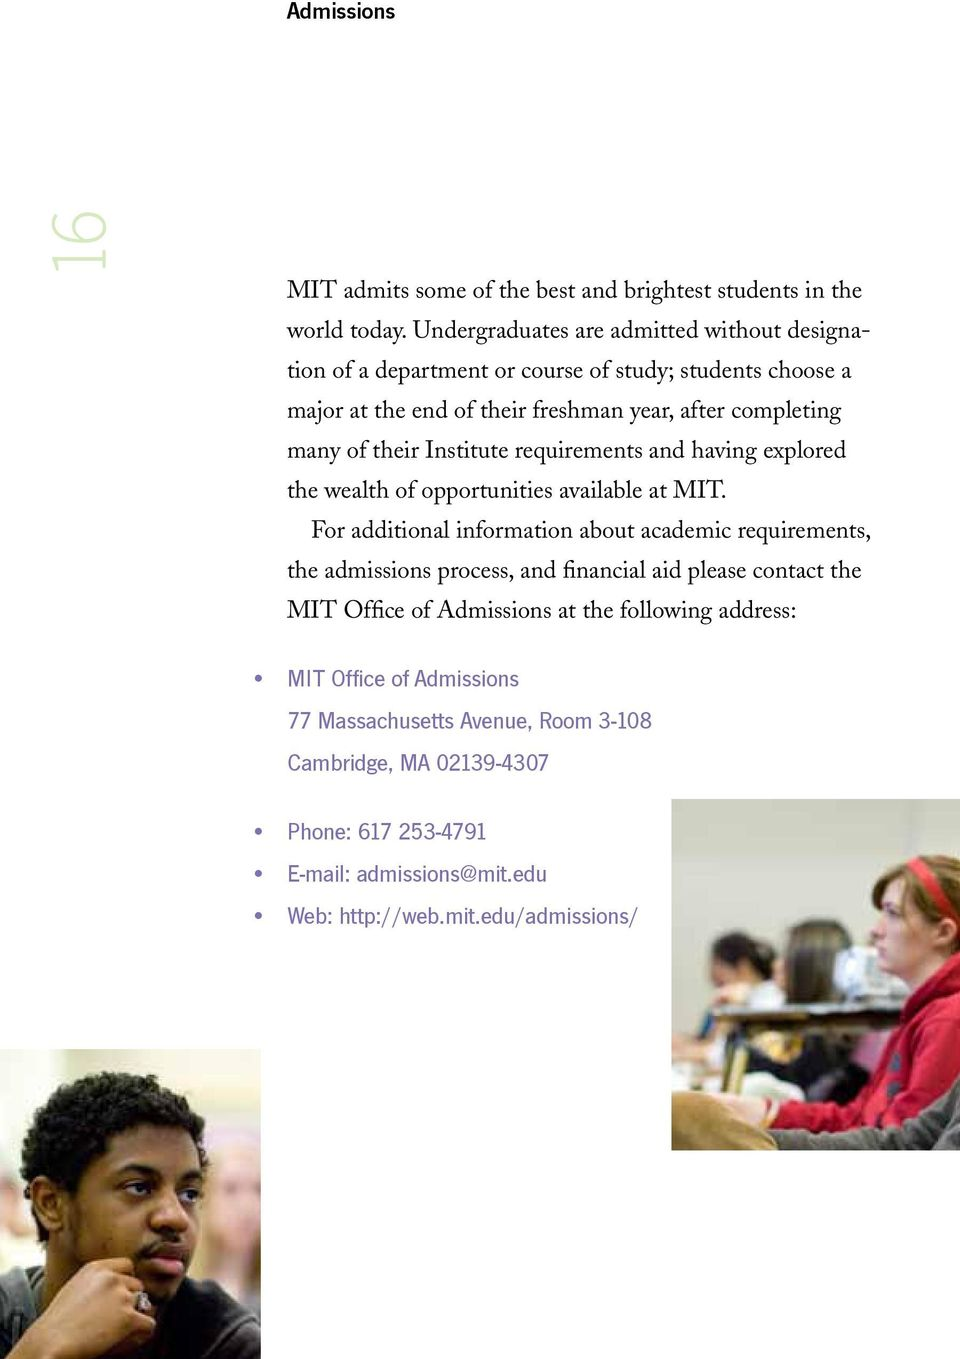 their Institute requirements and having explored the wealth of opportunities available at MIT.